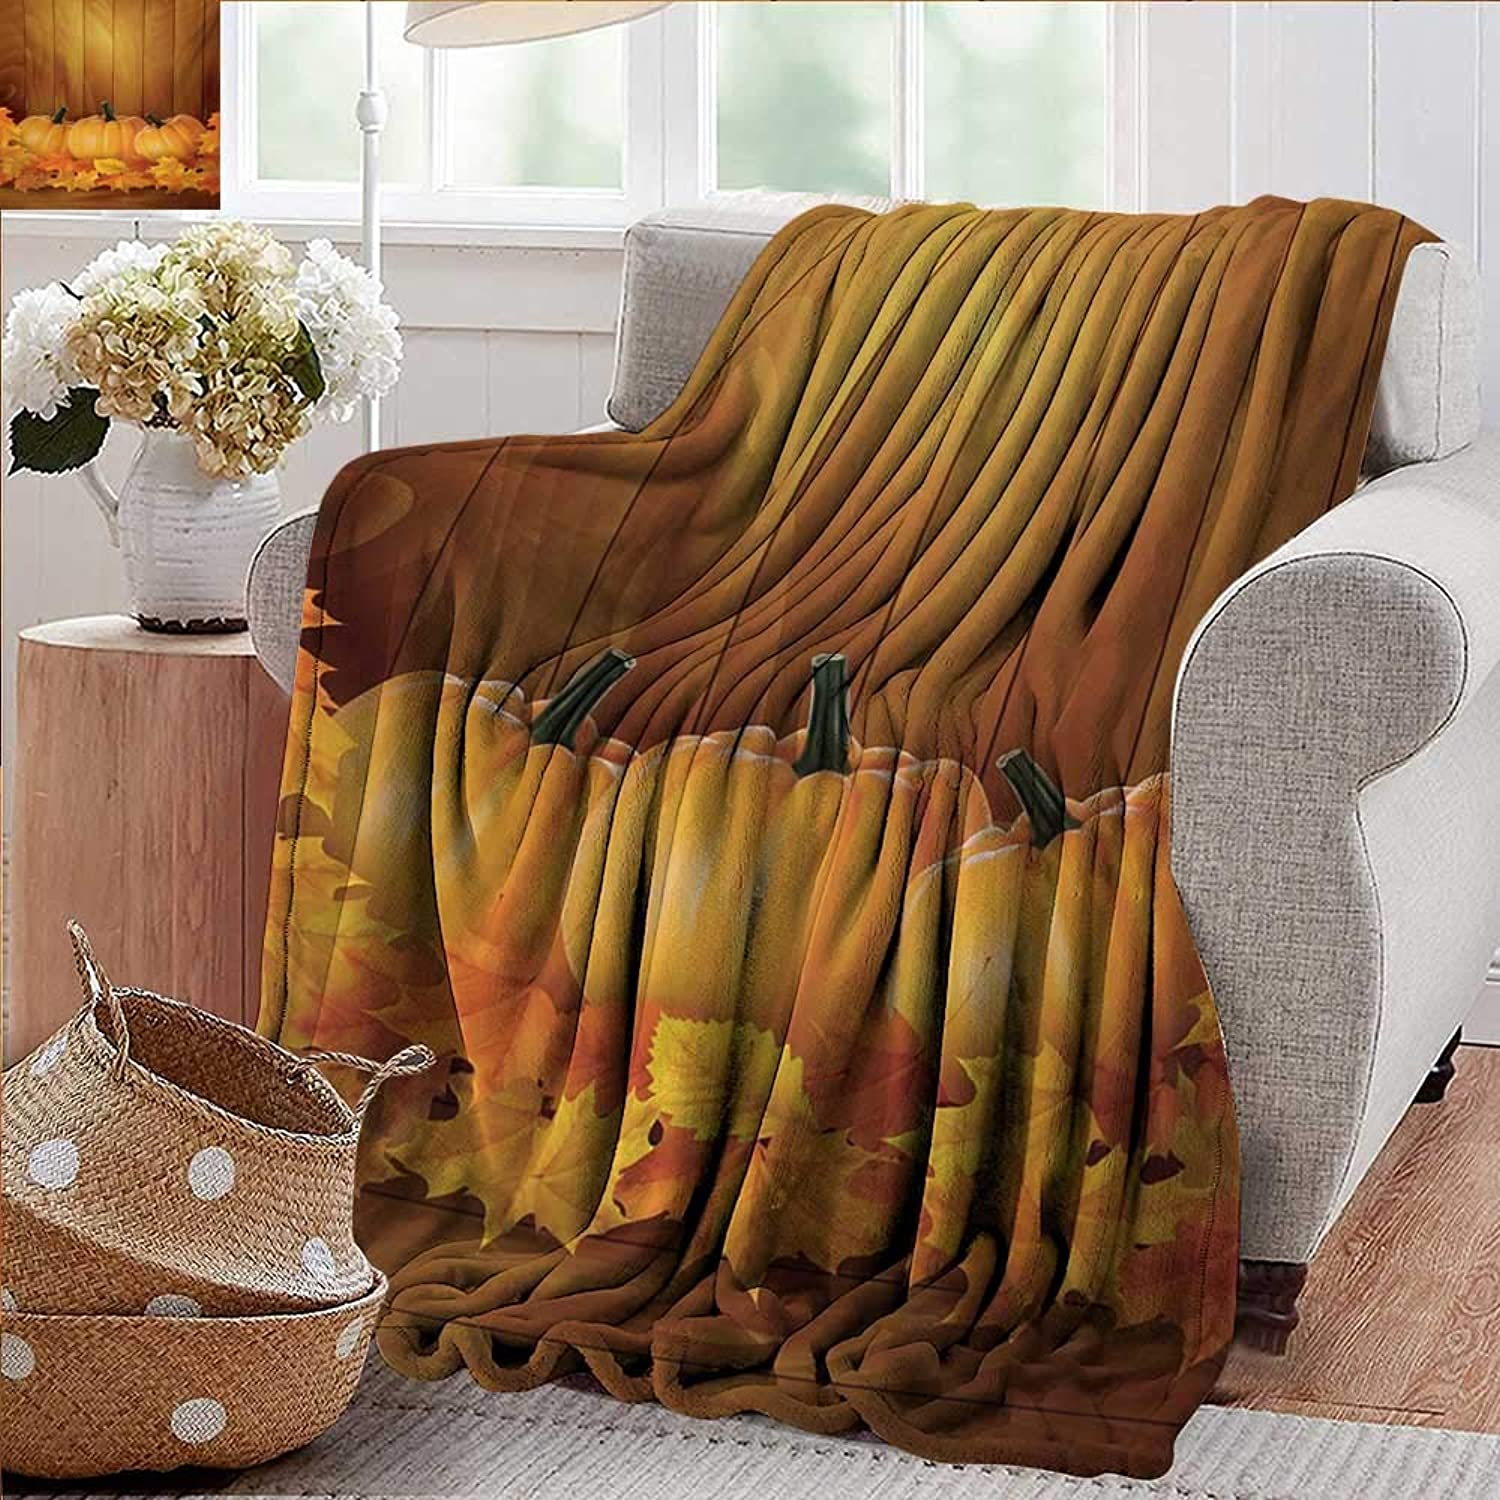 Weighted Blanket for Kids,Harvest,Squash Vegetables Pumpkins and Wooden Planks Fallen Dry Maple Leaves,orange Yellow Dark Green,Weighted Blanket for Adults Kids, Better Deeper Sleep 50 x70